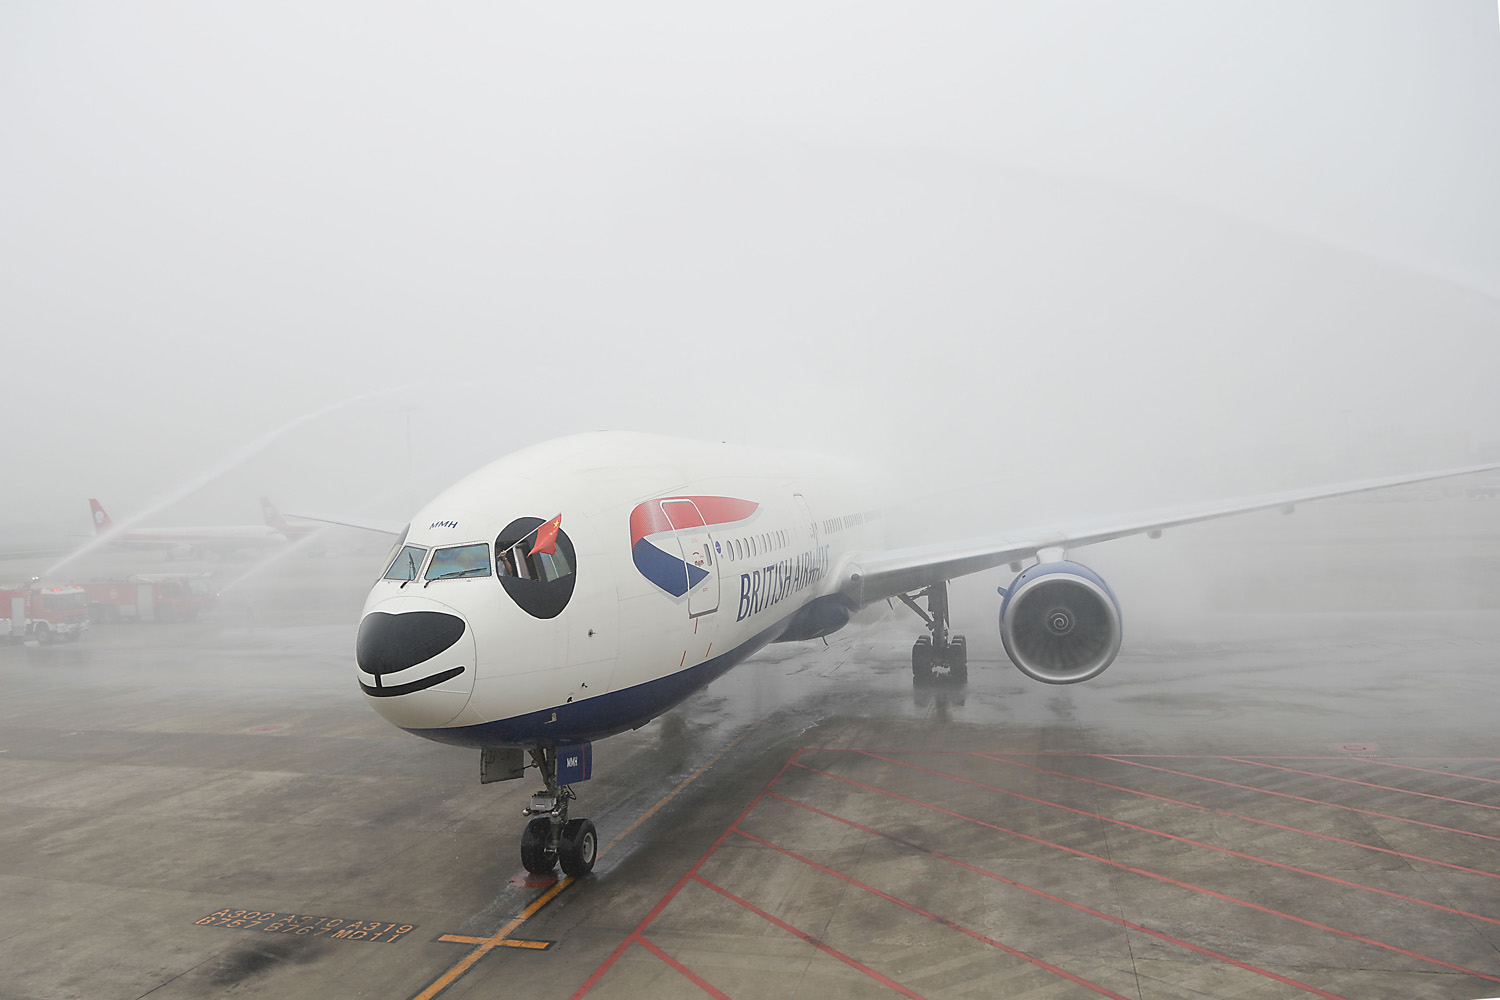 Sept. 23, 2013. Flight BA89 of British Airways is washed at the Shuangliu International Airport in Chengdu, capital of southwest China's Sichuan Province.